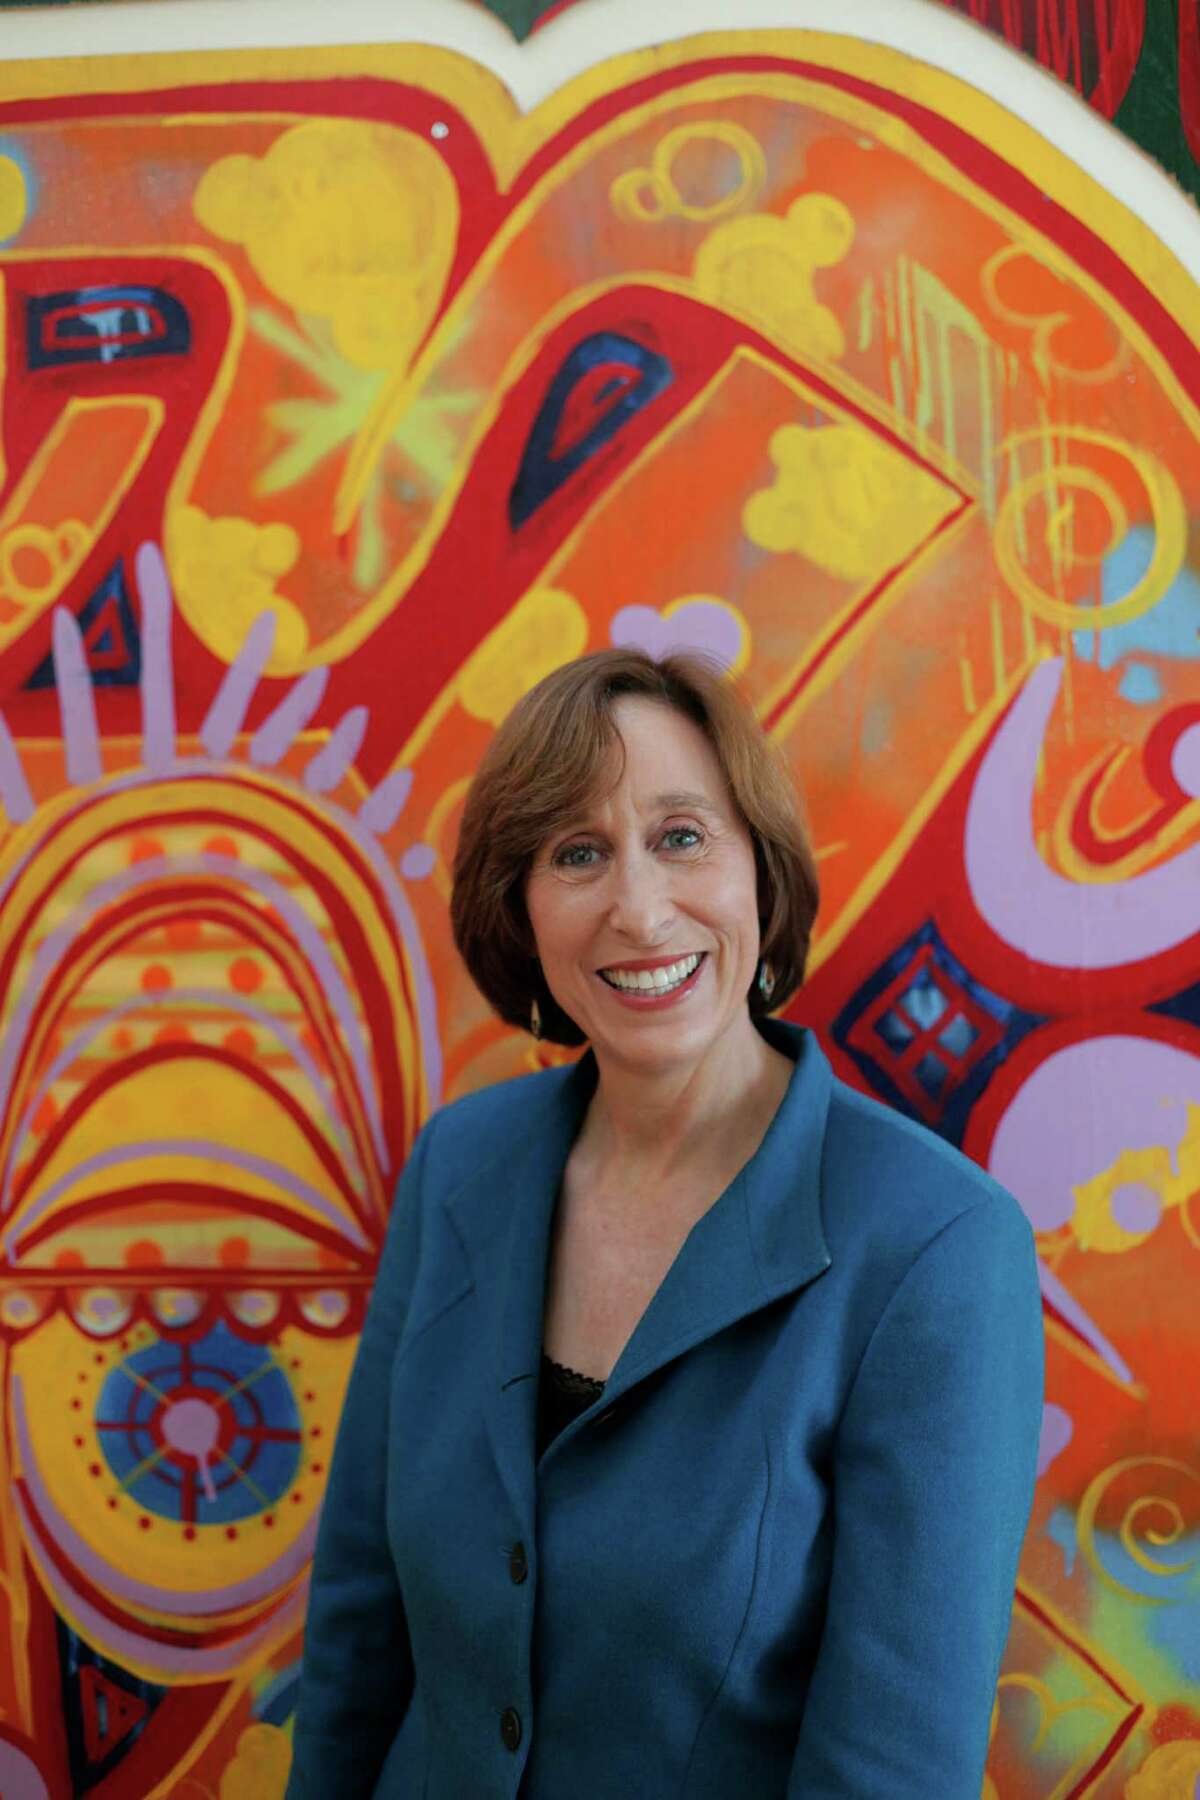 Tina Seelig's online class on developing creativity attracted 40,000 people last year.